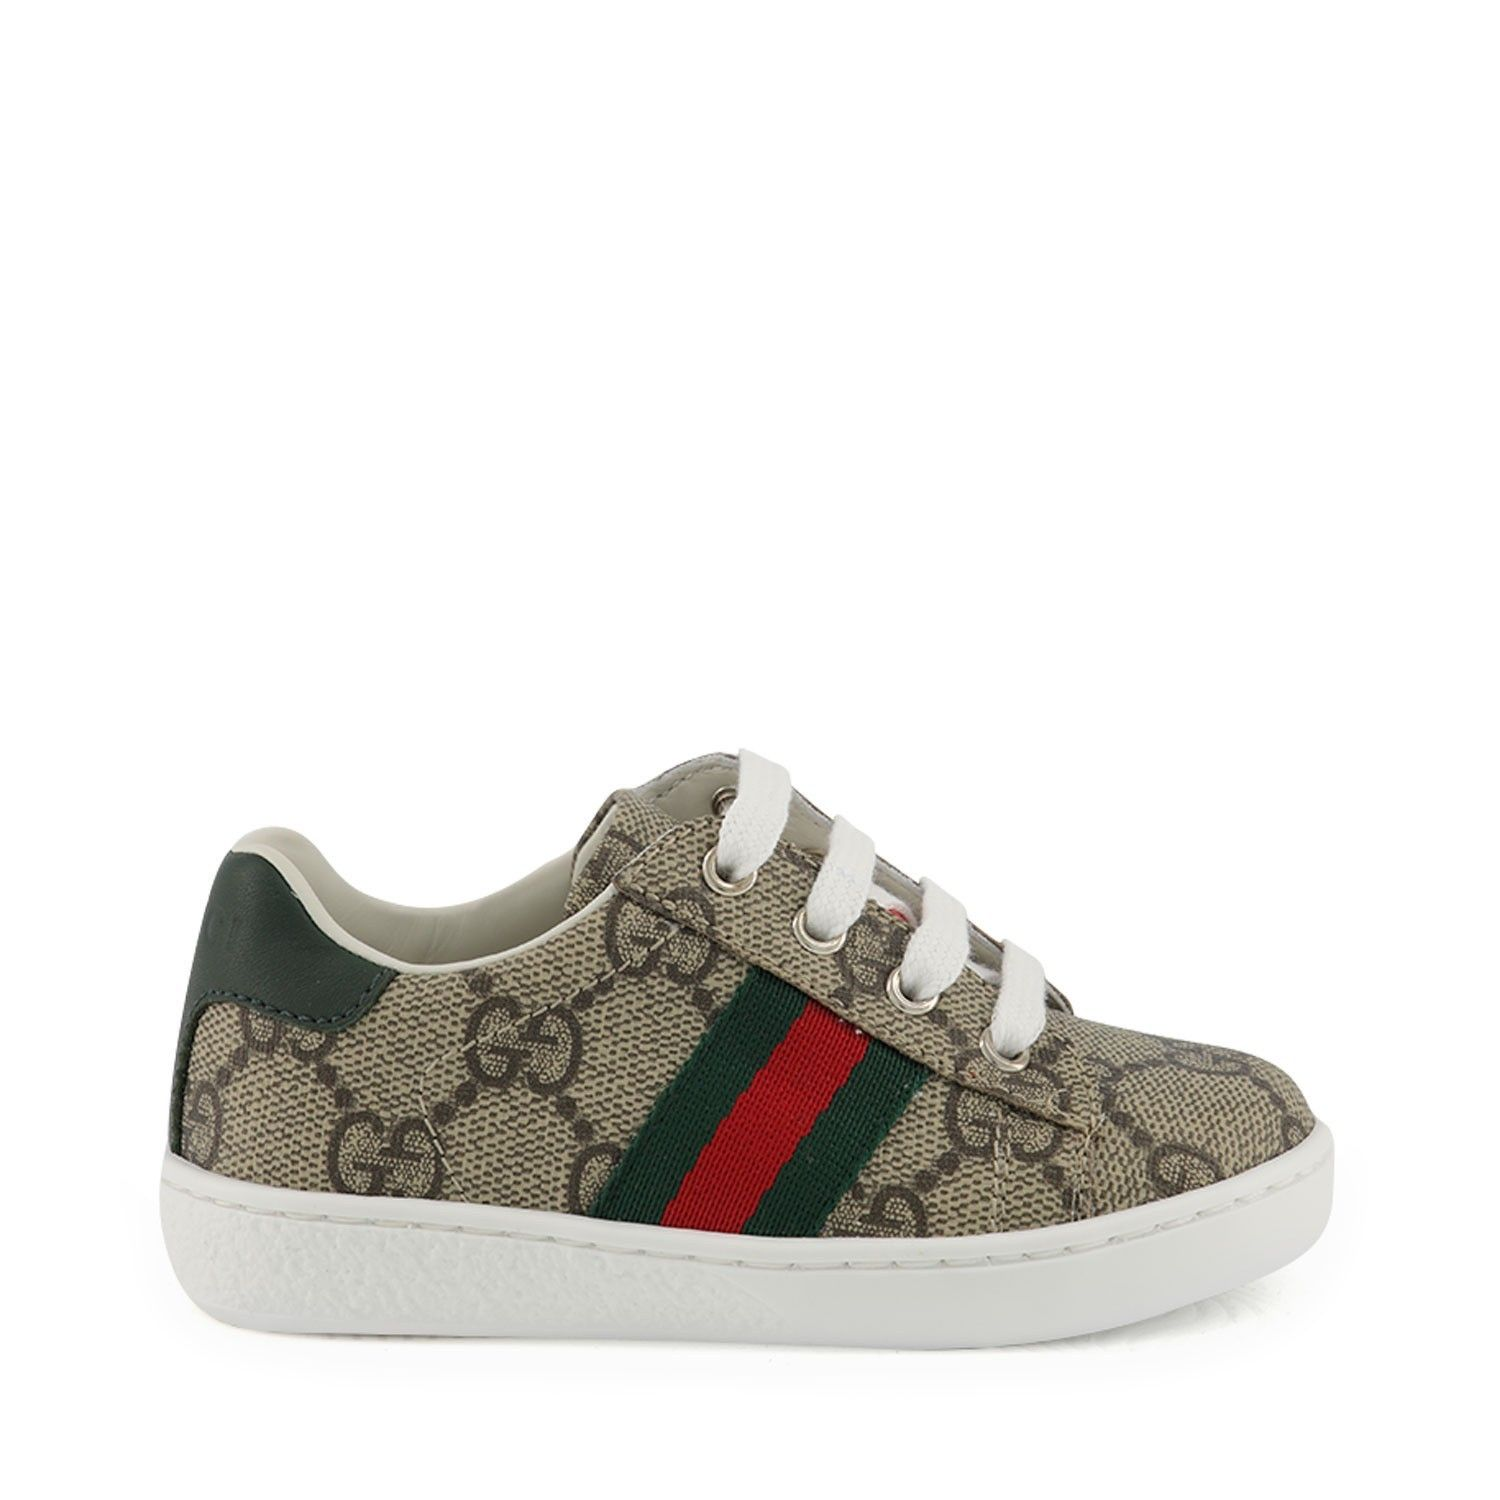 Picture of Gucci 433147 kids sneakers beige